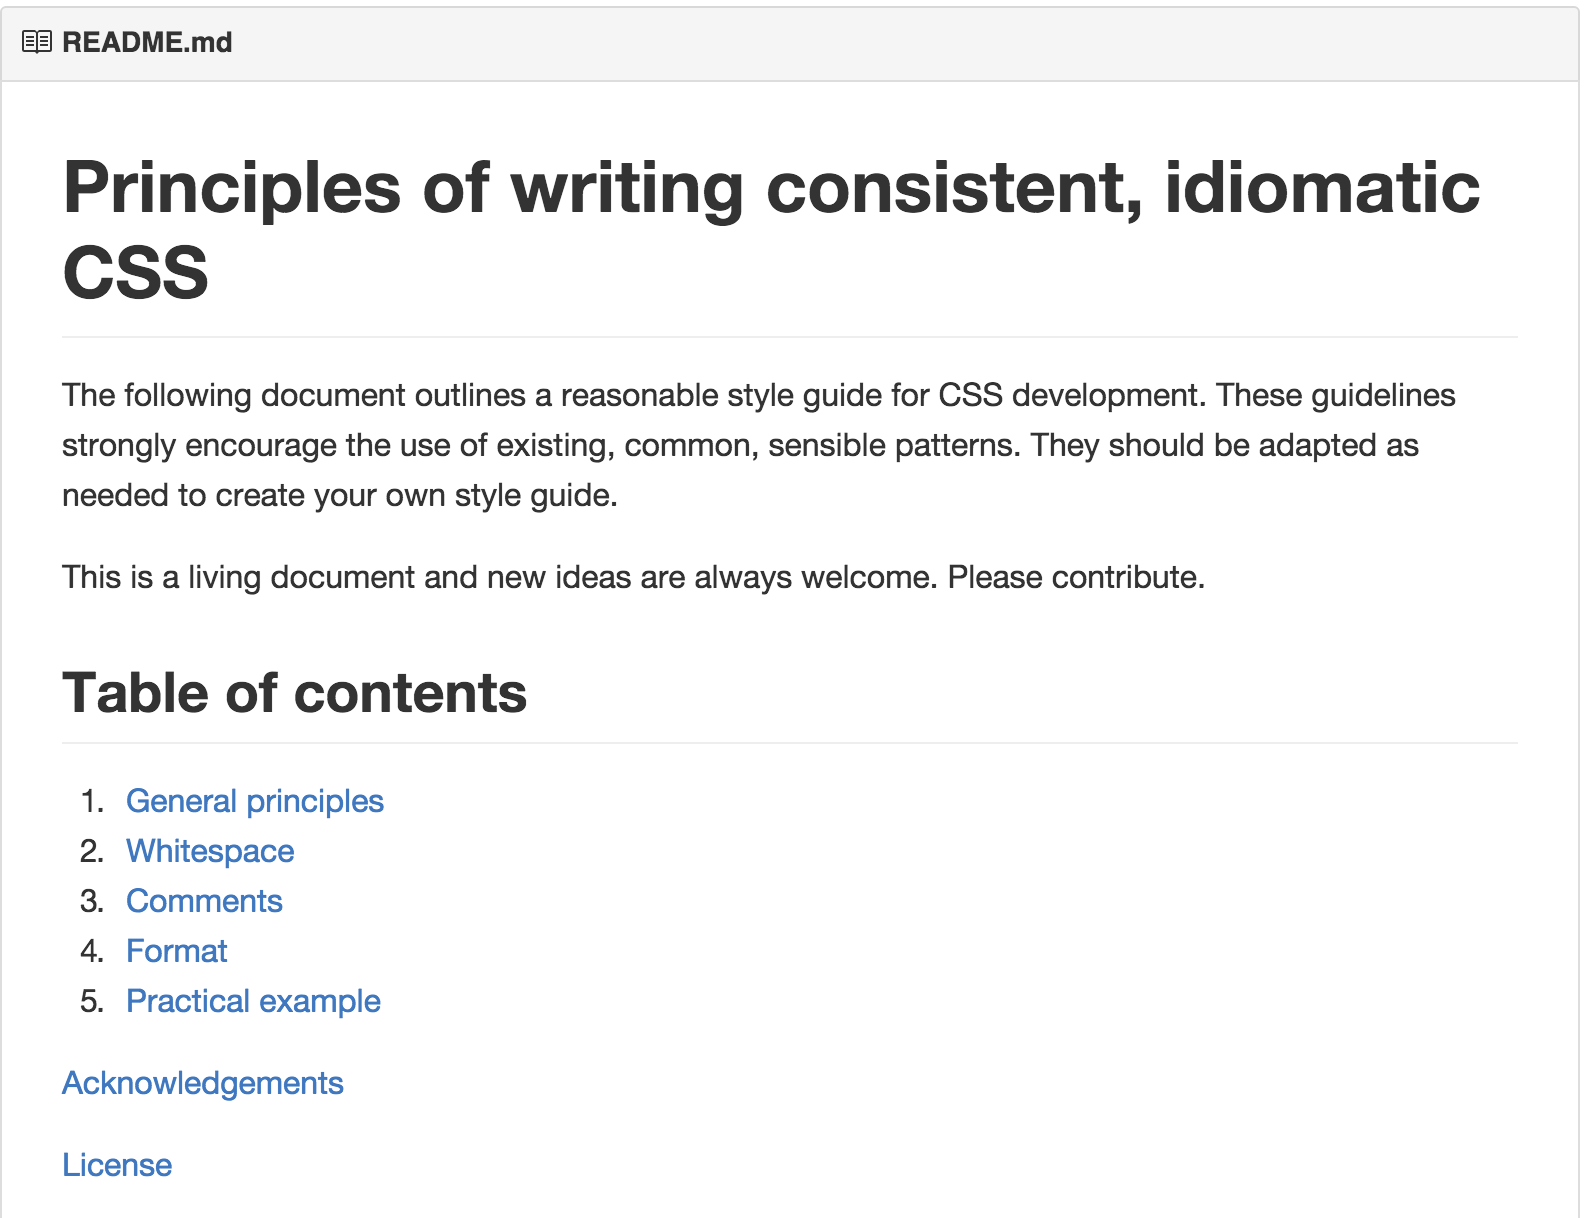 Principles of writing consistent idiomatic CSS Web Standards